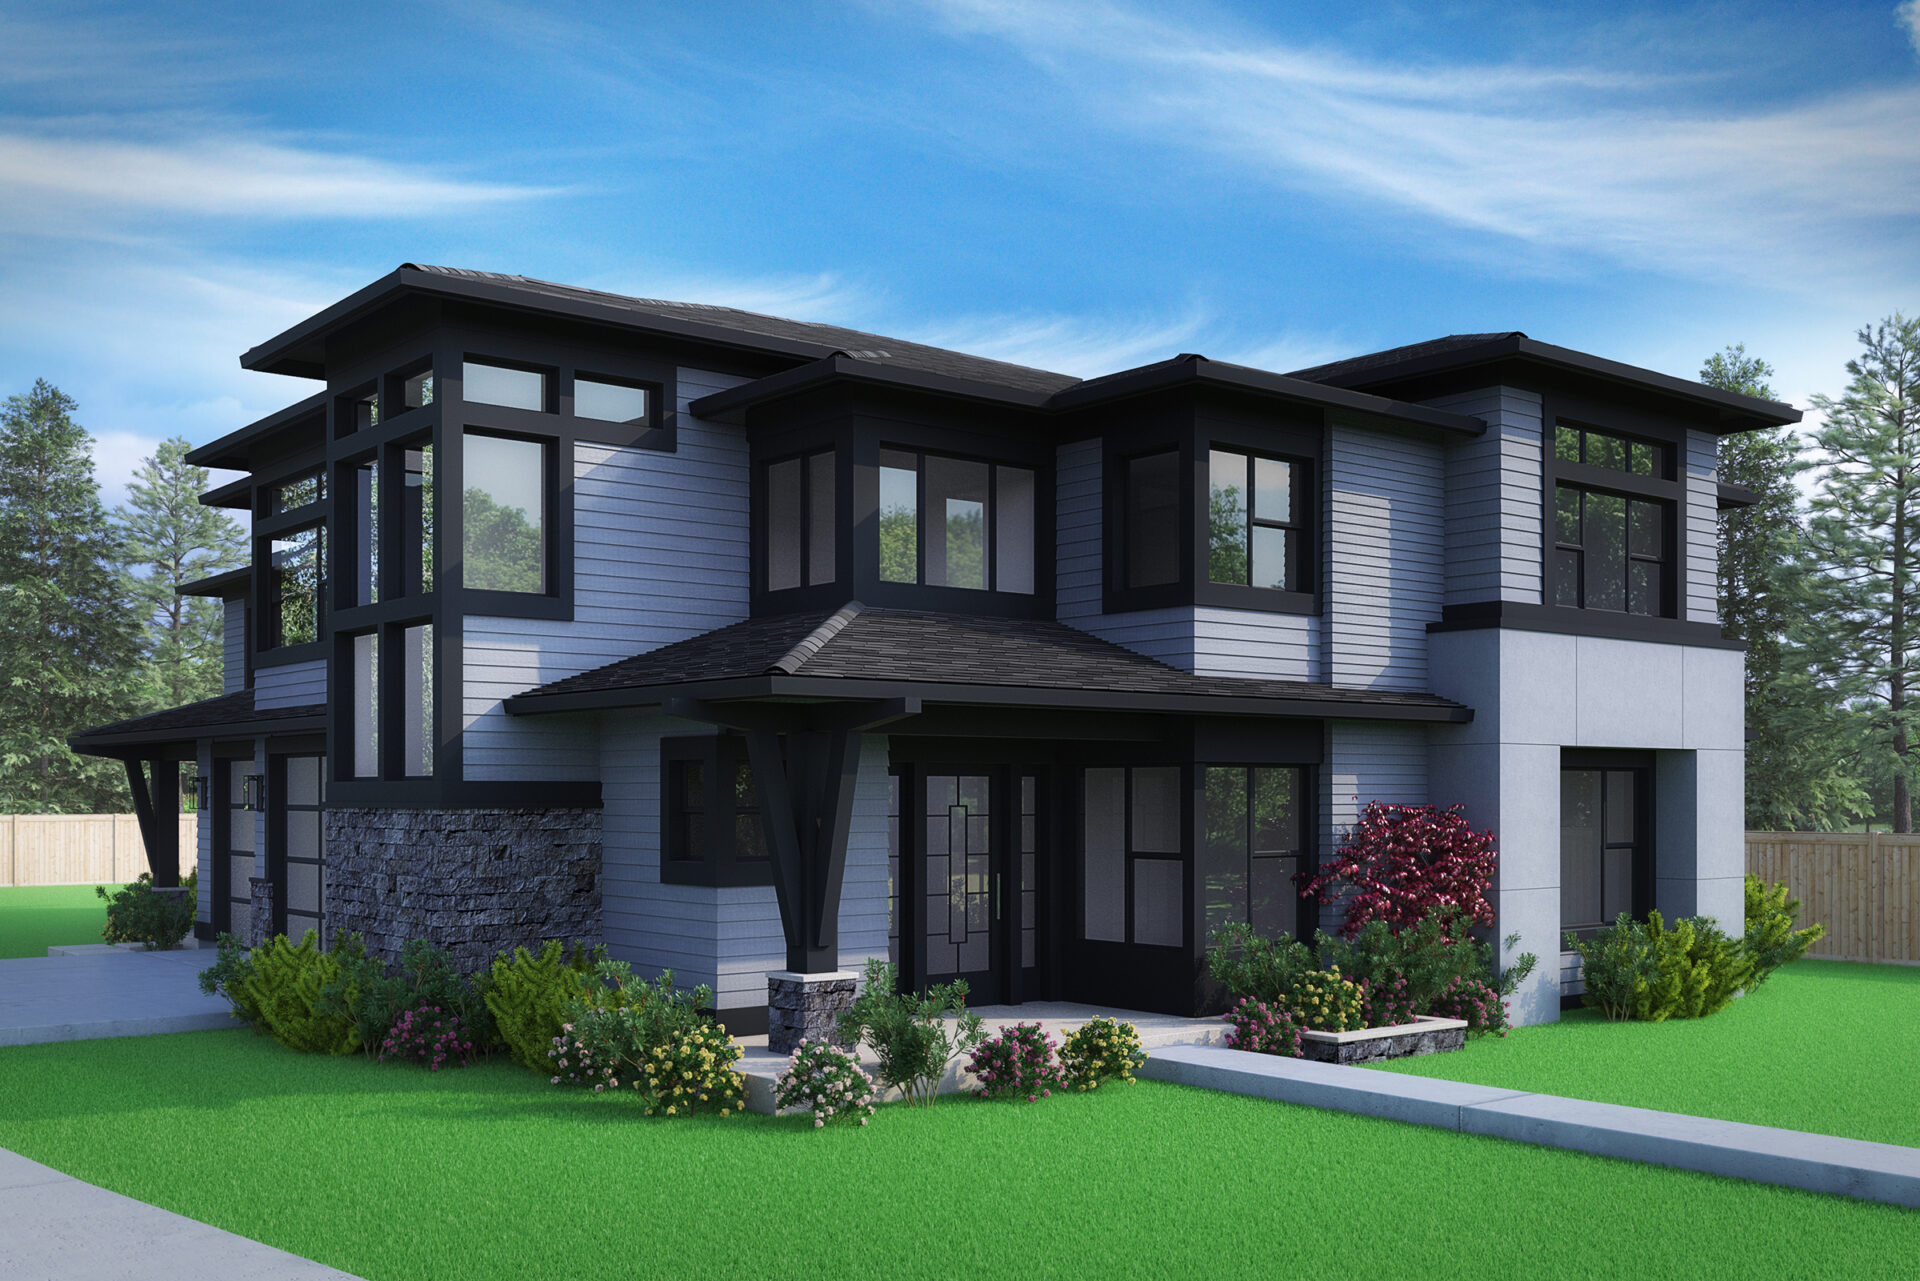 View our new luxury home construction on 2210 108th Ave SE, in Bellevue, WA from MN Custom Homes